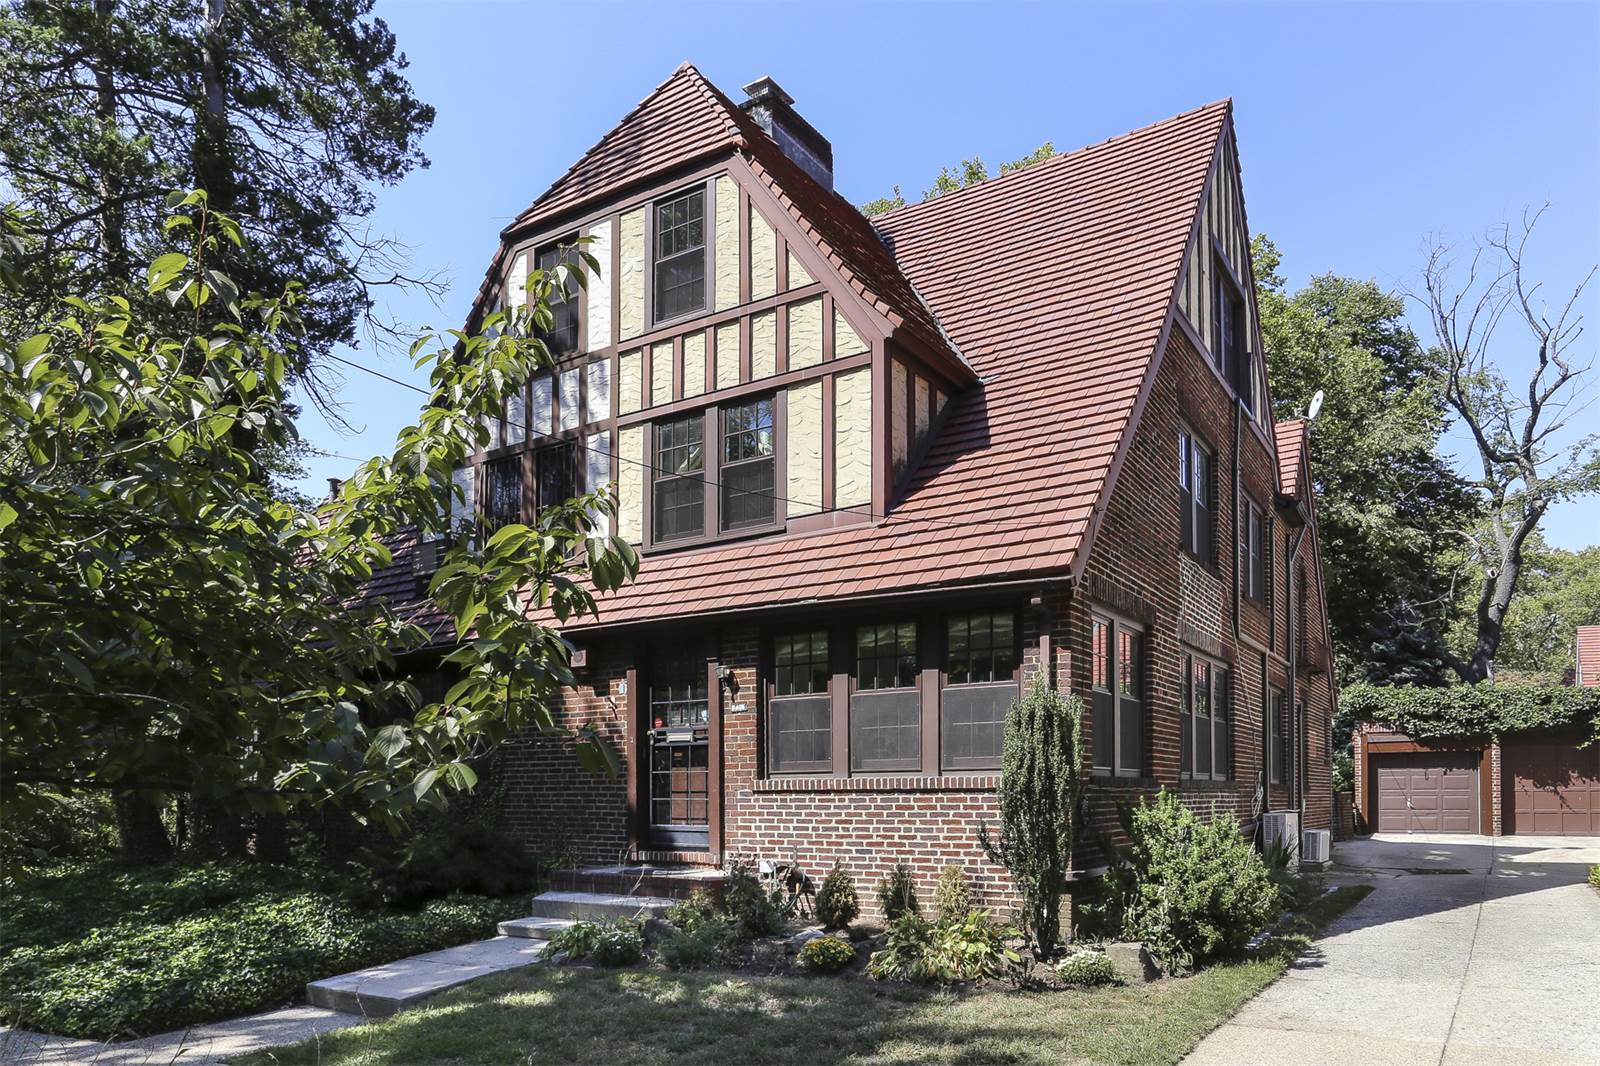 OPEN HOUSE SUNDAY MAY 21ST 12 2 PM / 114 05 UNION TURNPIKE , FOREST HILLS  GARDENS, QUEENS, NYC. Queens New York Real Estate ... Design Ideas